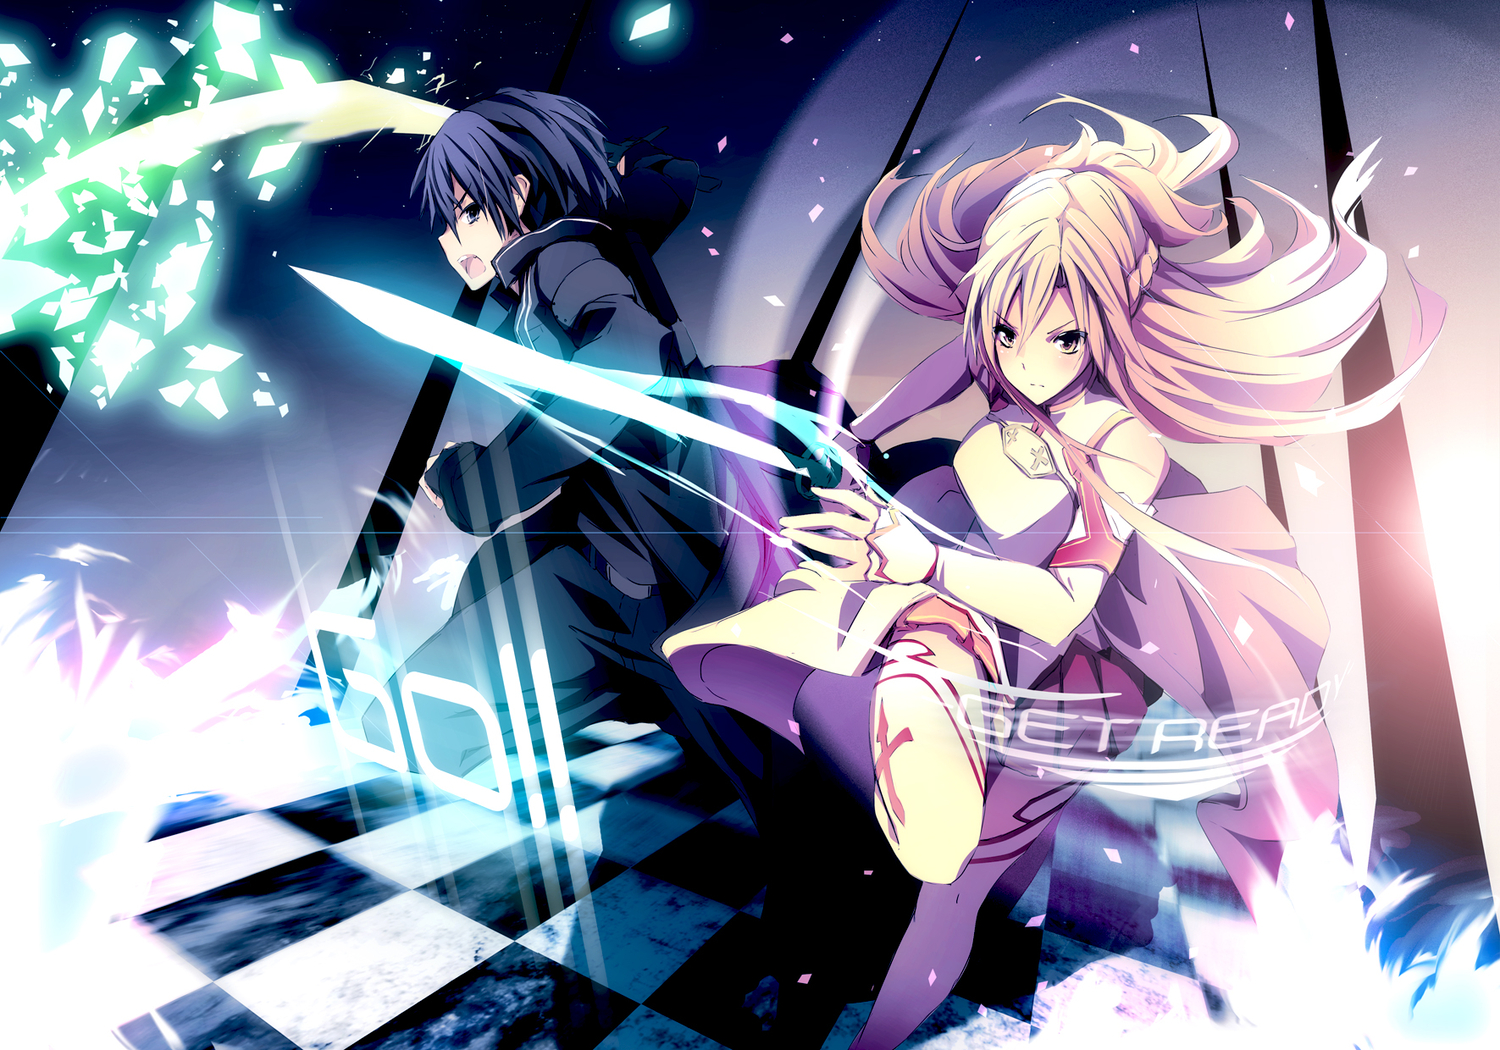 black_eyes black_hair blonde_hair gloves kirigaya_kazuto long_hair merontomari short_hair sword sword_art_online weapon yellow_eyes yuuki_asuna